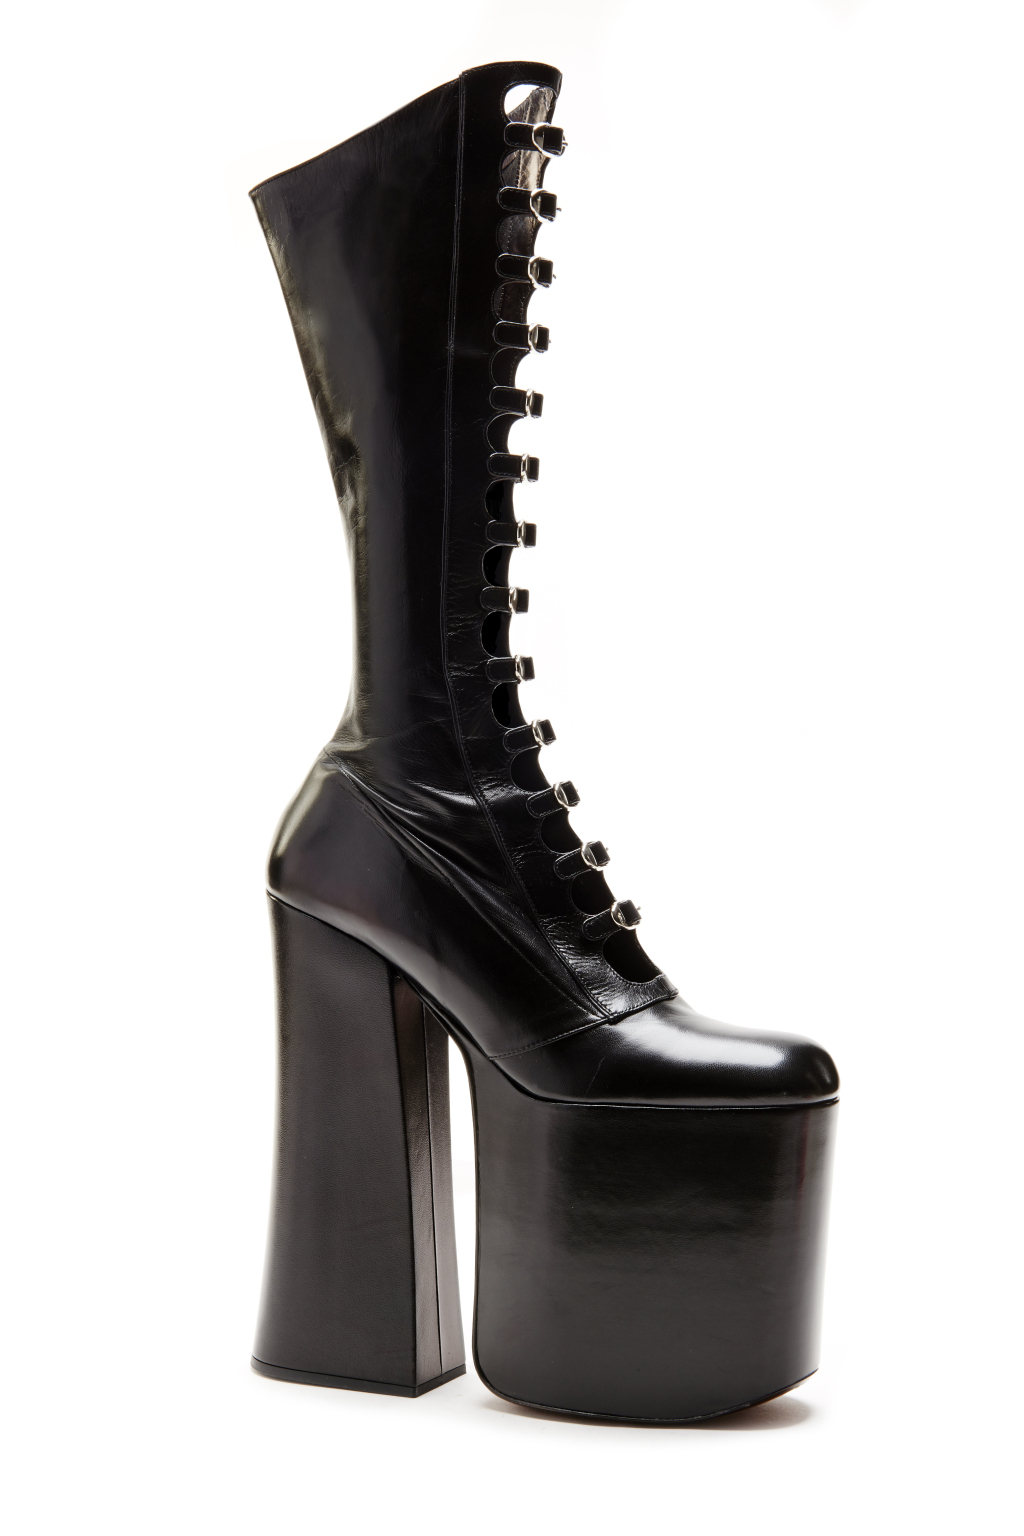 26-marc-jacobs-tall-boot-27